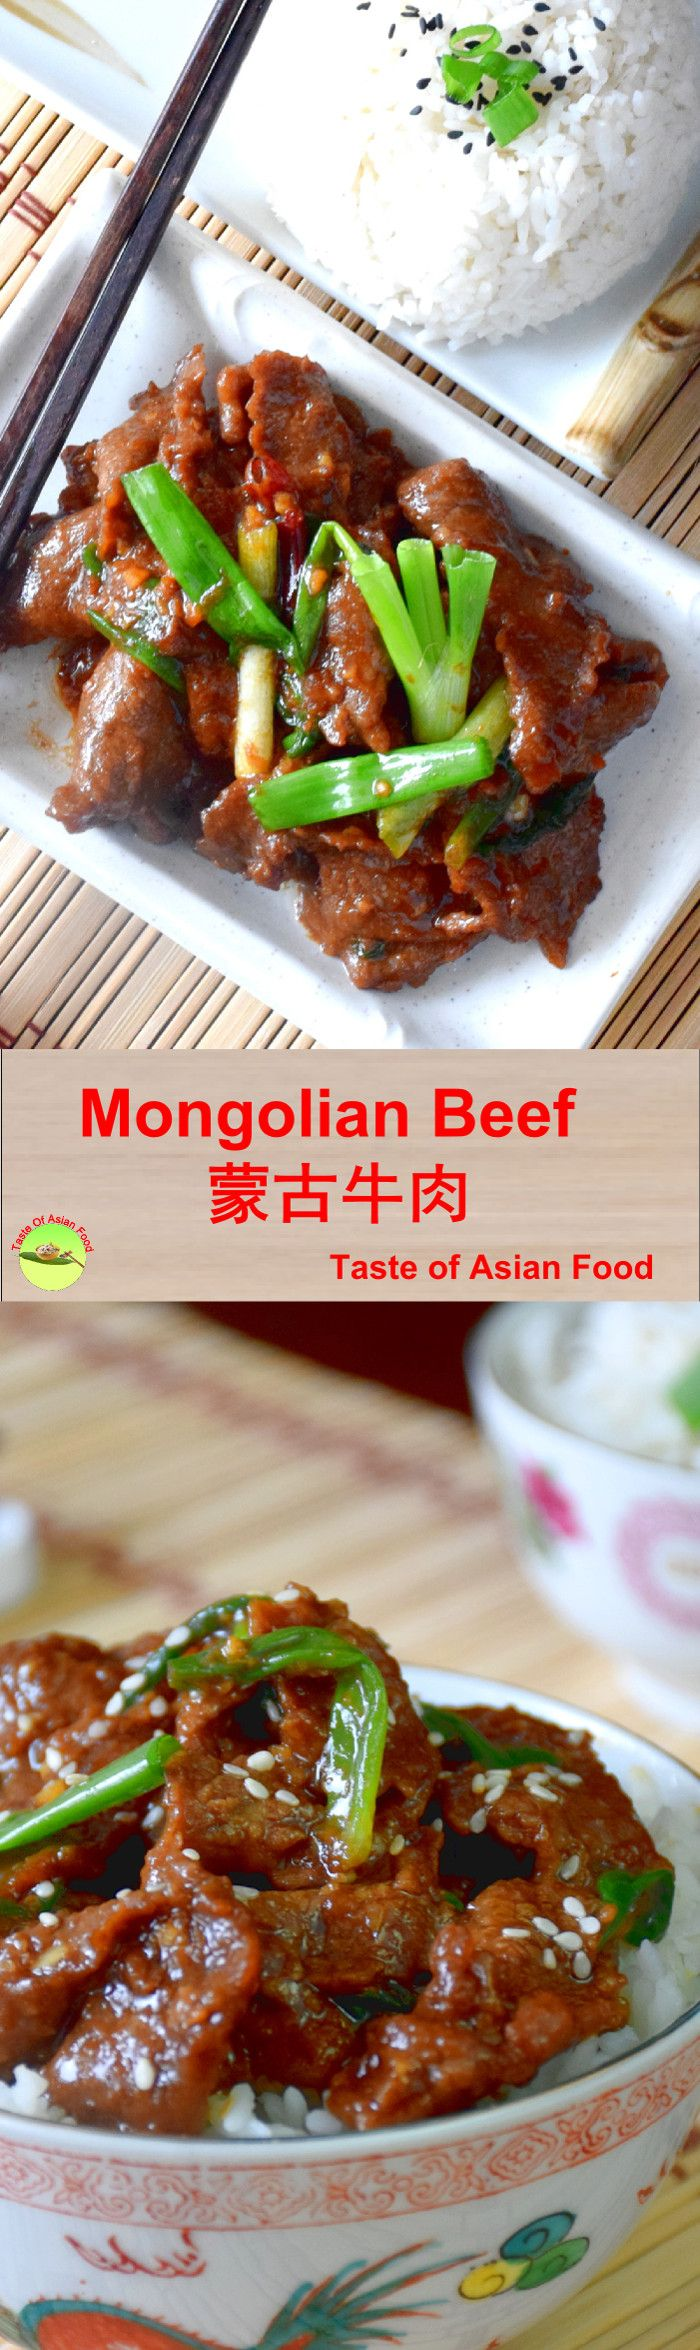 If you think Mongolian beef is Mongolian cuisine, think again.  You won't find Mongolian beef in Mongolia. It was created by American chefs who thought that a cuisine with an exotic name would sell well.  Today, it is among the most famous American Chinese food along with General Tso's Chicken.  Video demonstration and recipe at: http://tasteasianfood.com/mongolian-beef-recipe/